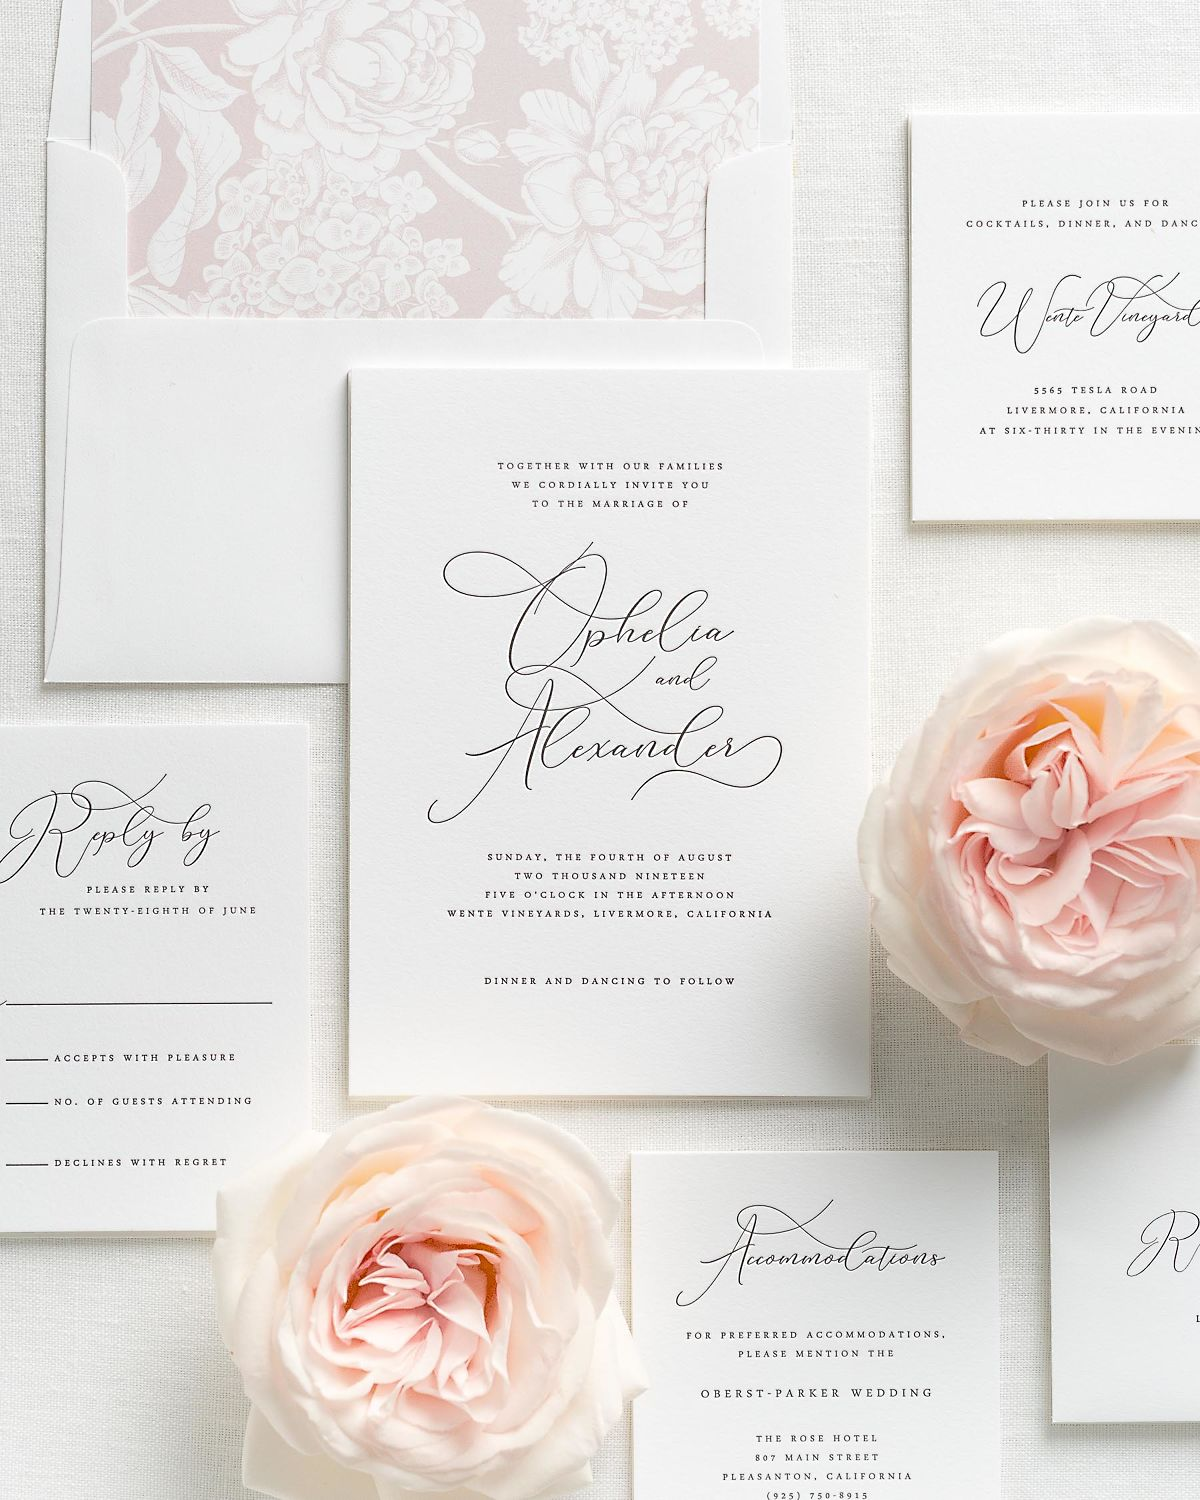 Letterpress Wedding Invitations with Vintage Blush Hydrangea Envelope Liner and Matching Accessories